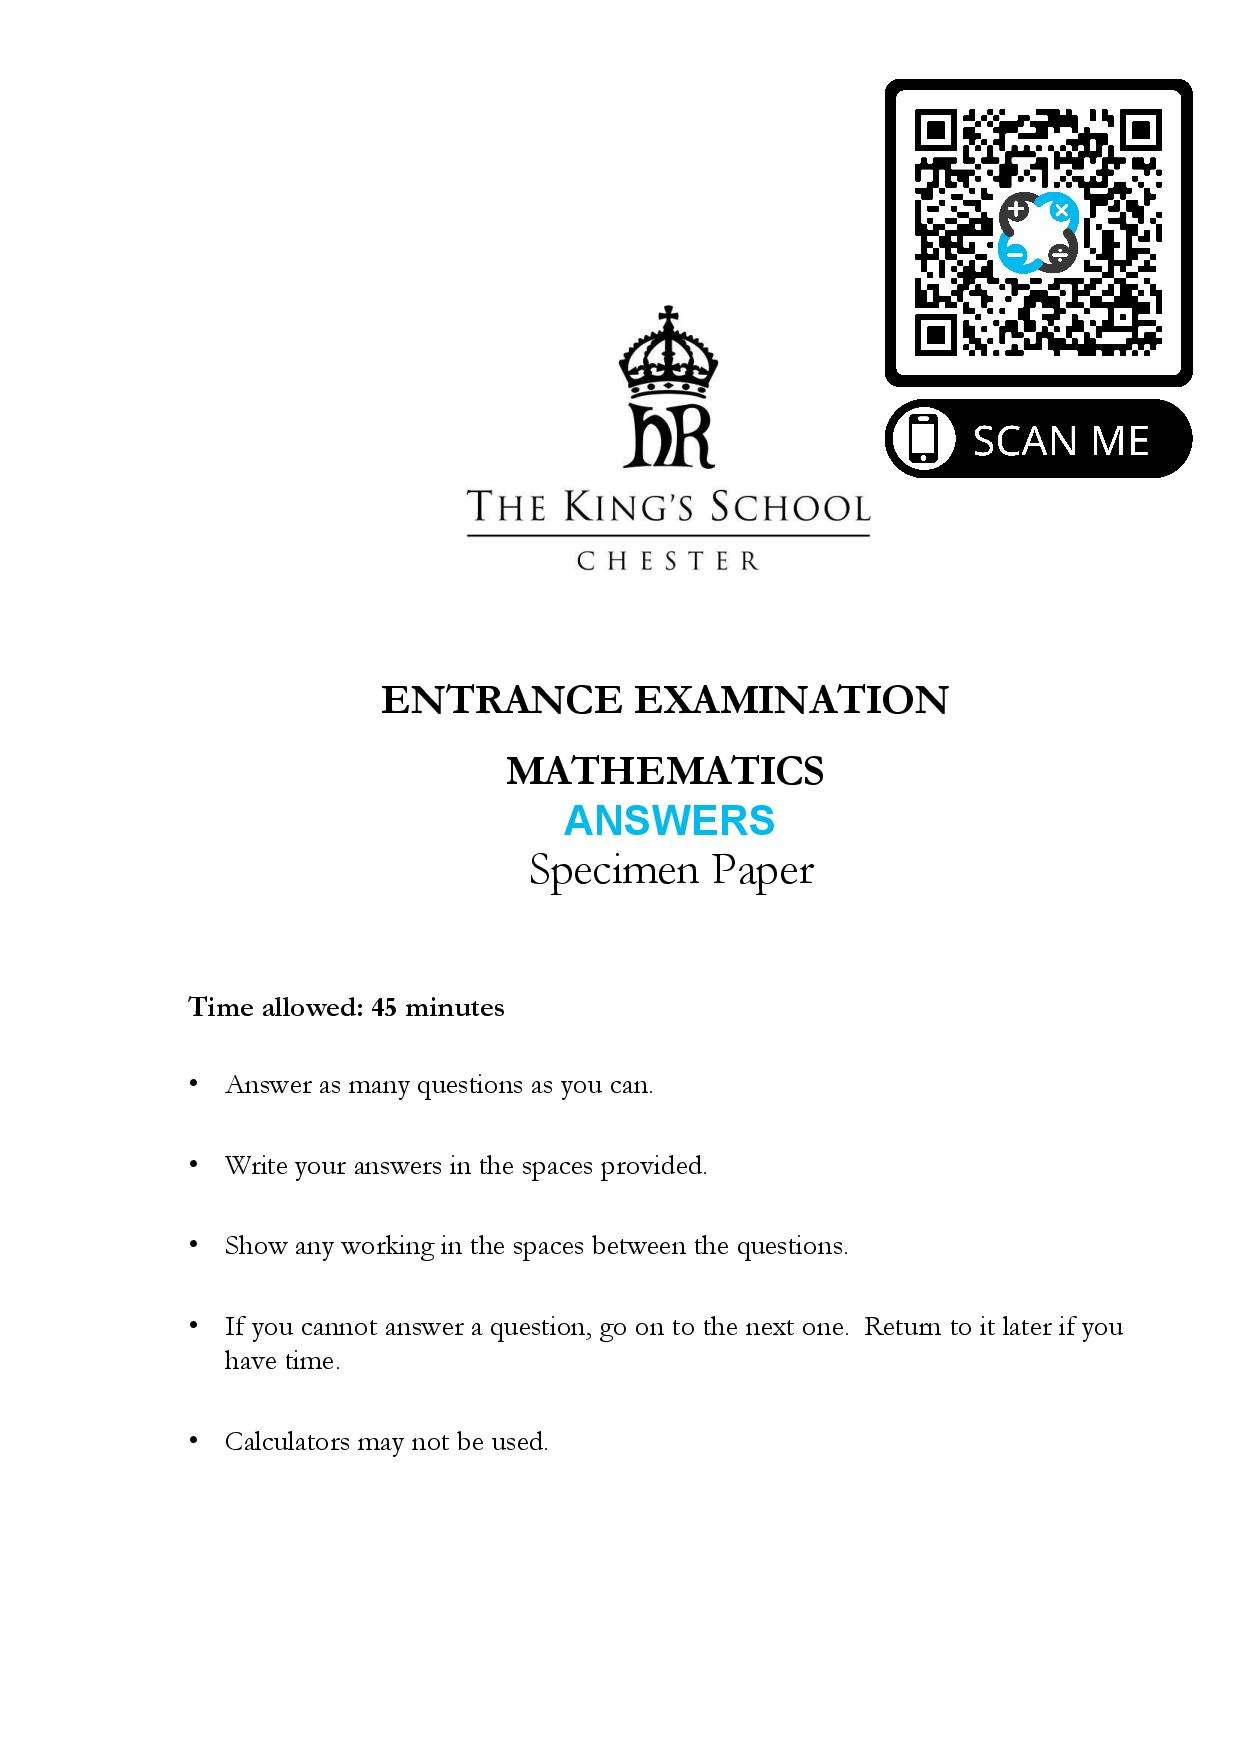 The Kings School Chester ENTRANCE EXAMINATION MATHEMATICS Specimen Paper Answer Paper page 001